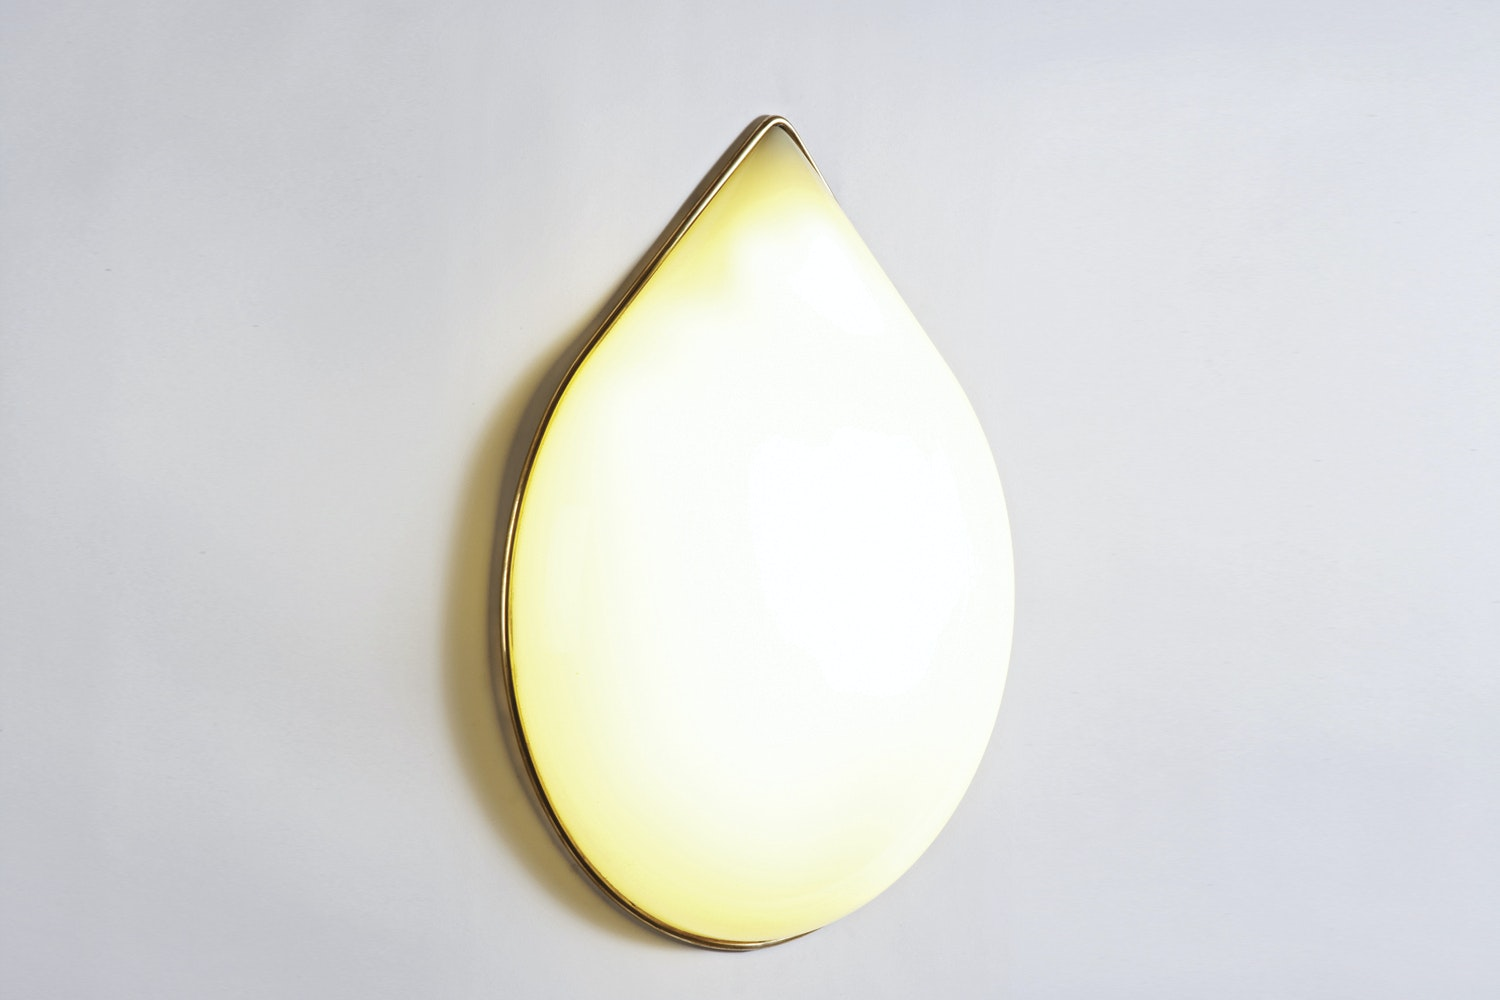 Odds & Ends Wall Lamp by Jason Miller for Roll & Hill